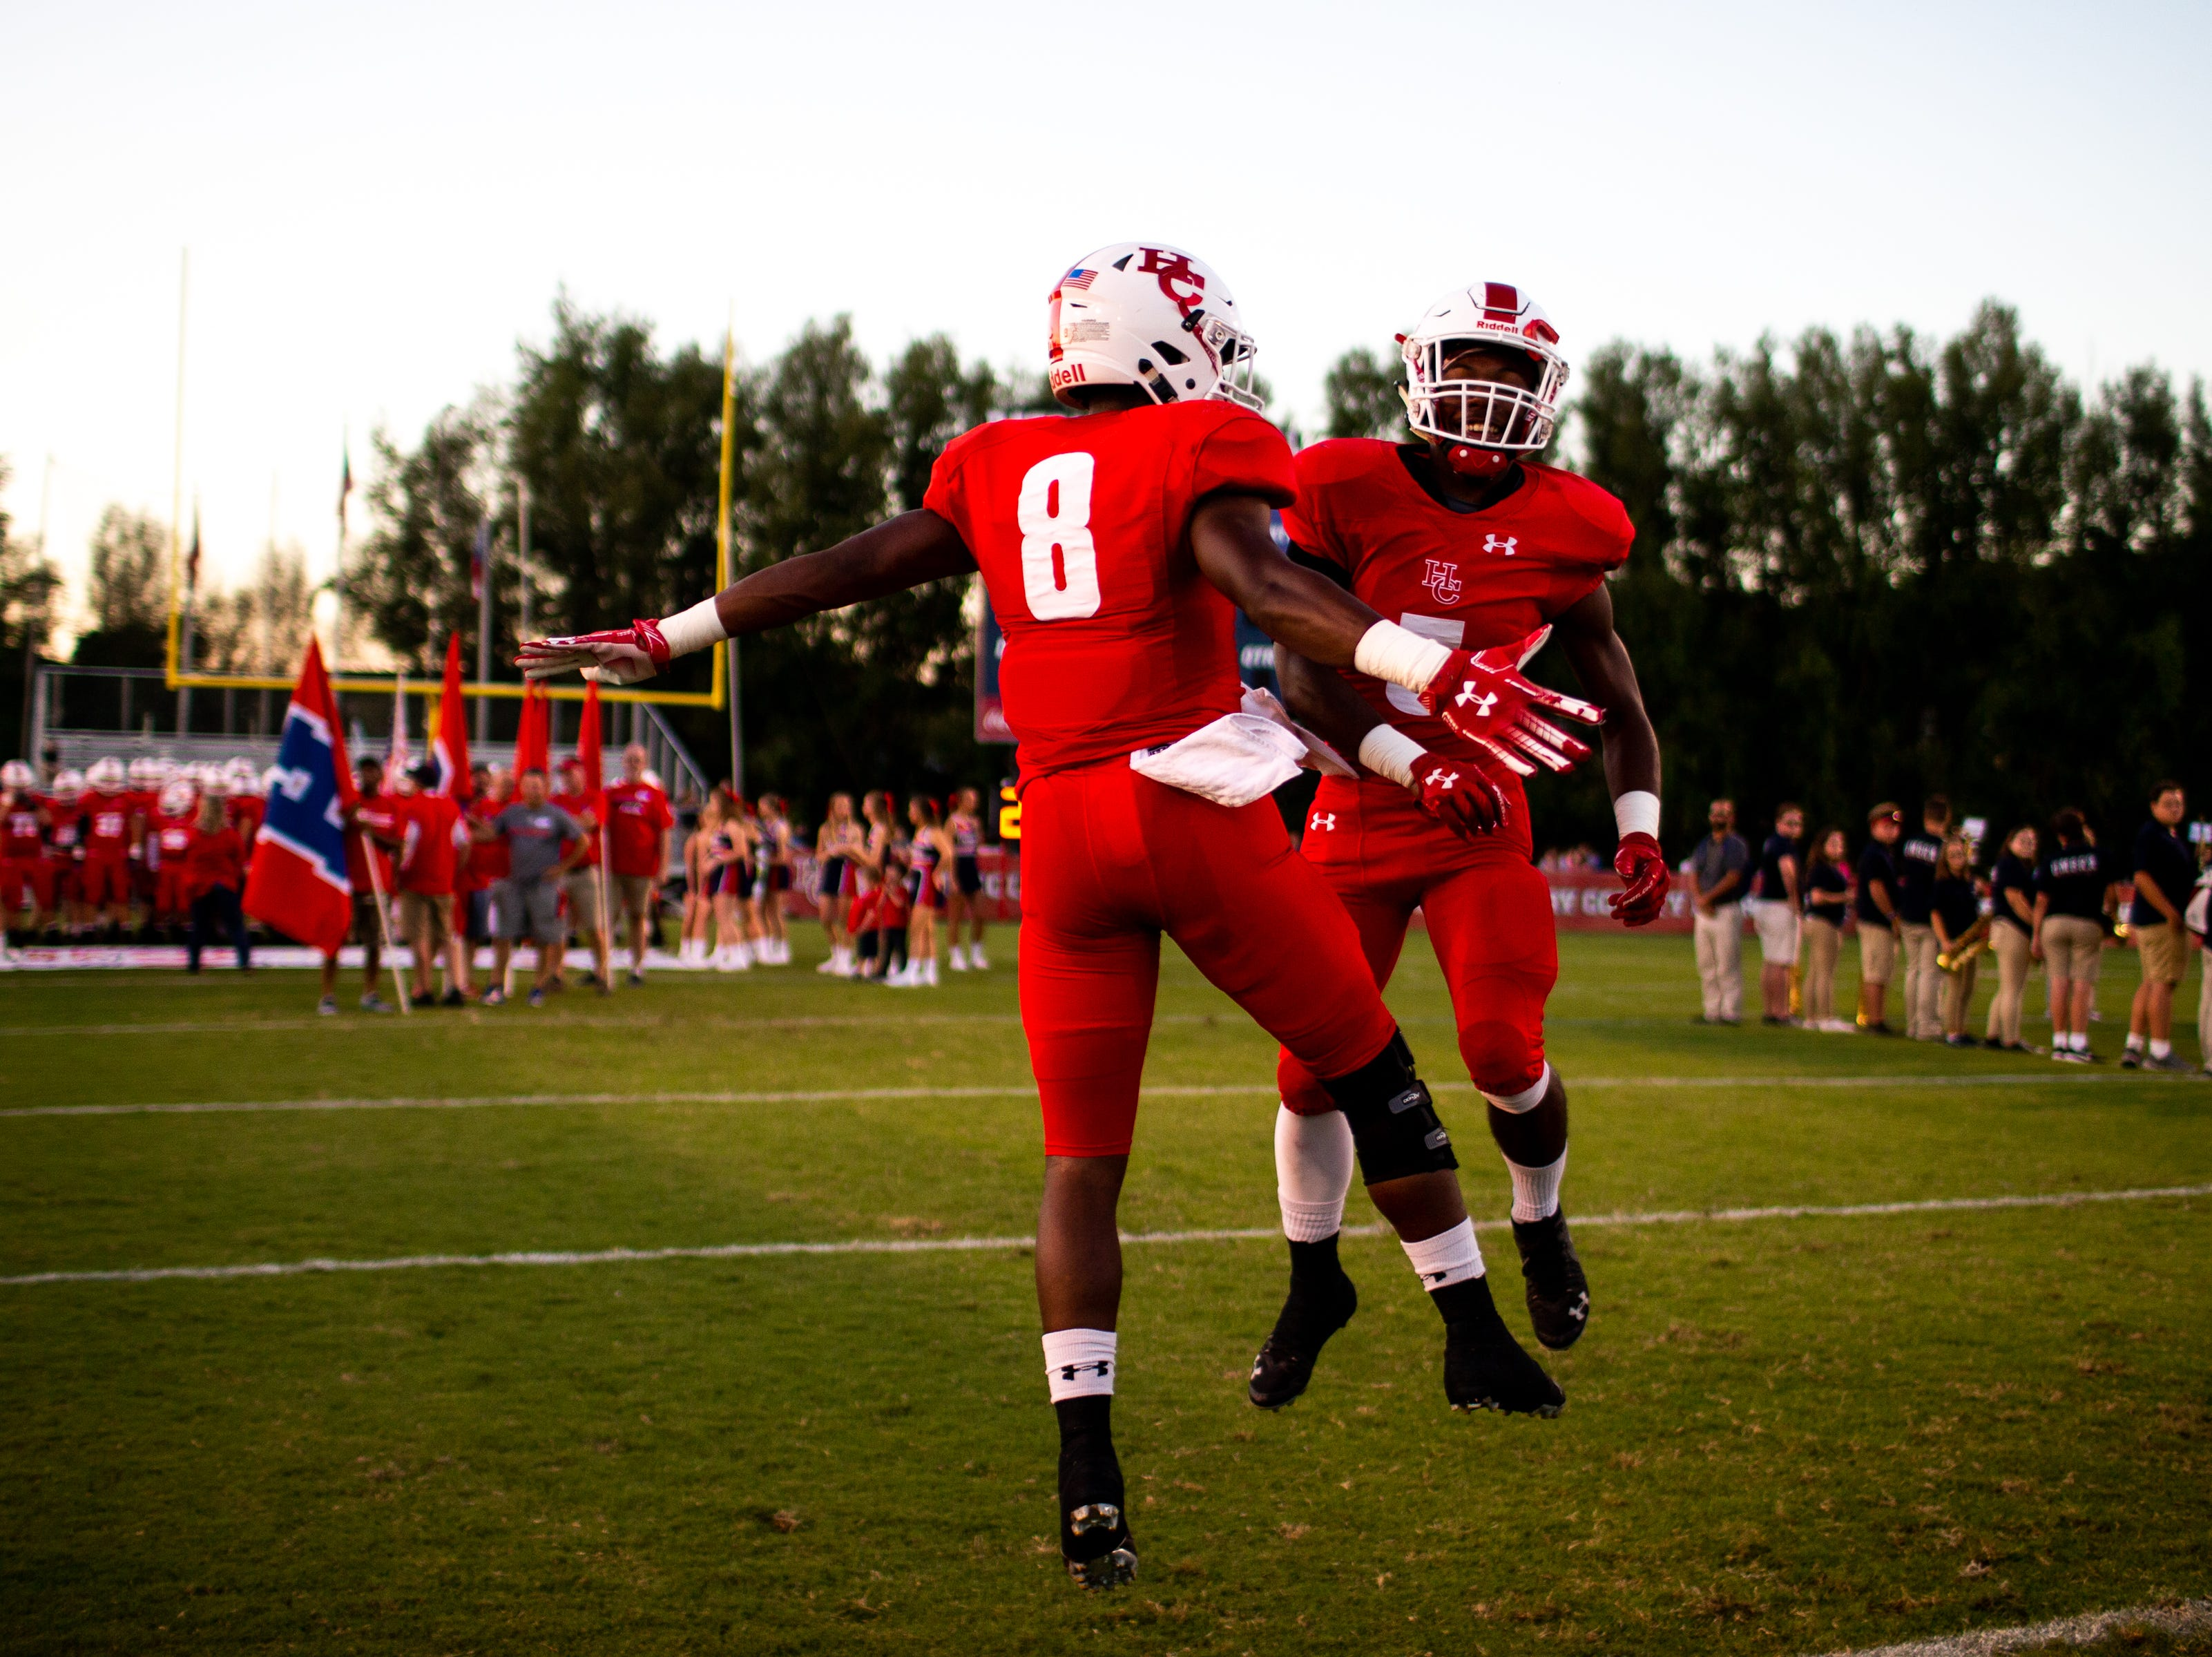 Joseph Travis (8) and Jayln Foster (5) of Henry County greet each other before the first half at Henry County Friday, Sept. 14, 2018, in Paris, Tenn.